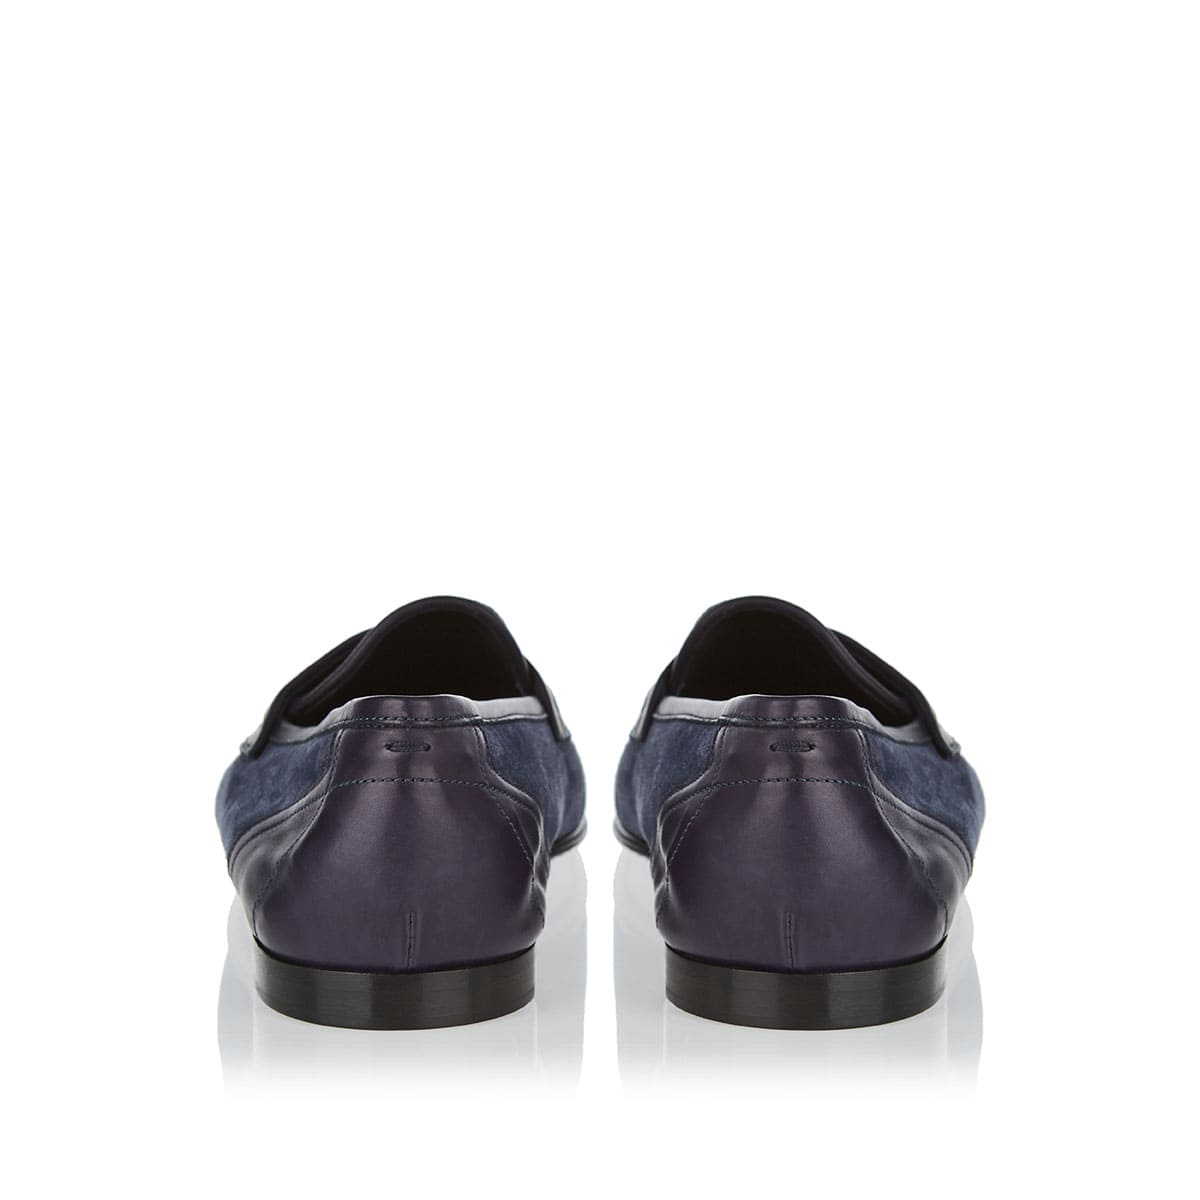 Suede and leather loafers